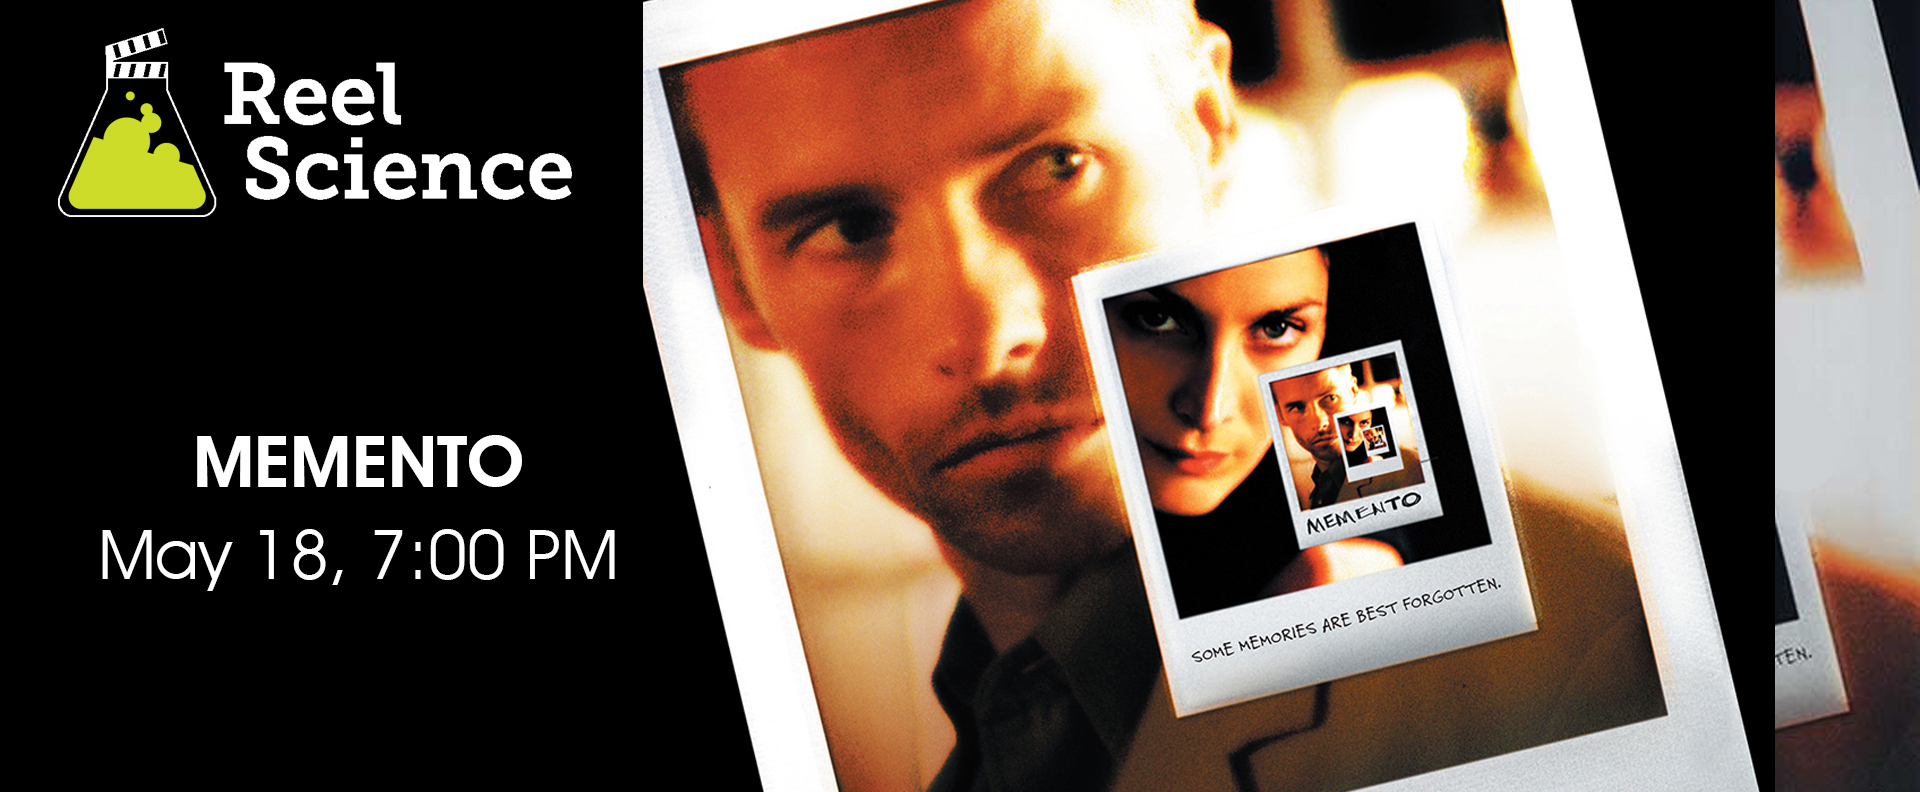 Reel Science Film Series: Memento (May 18)